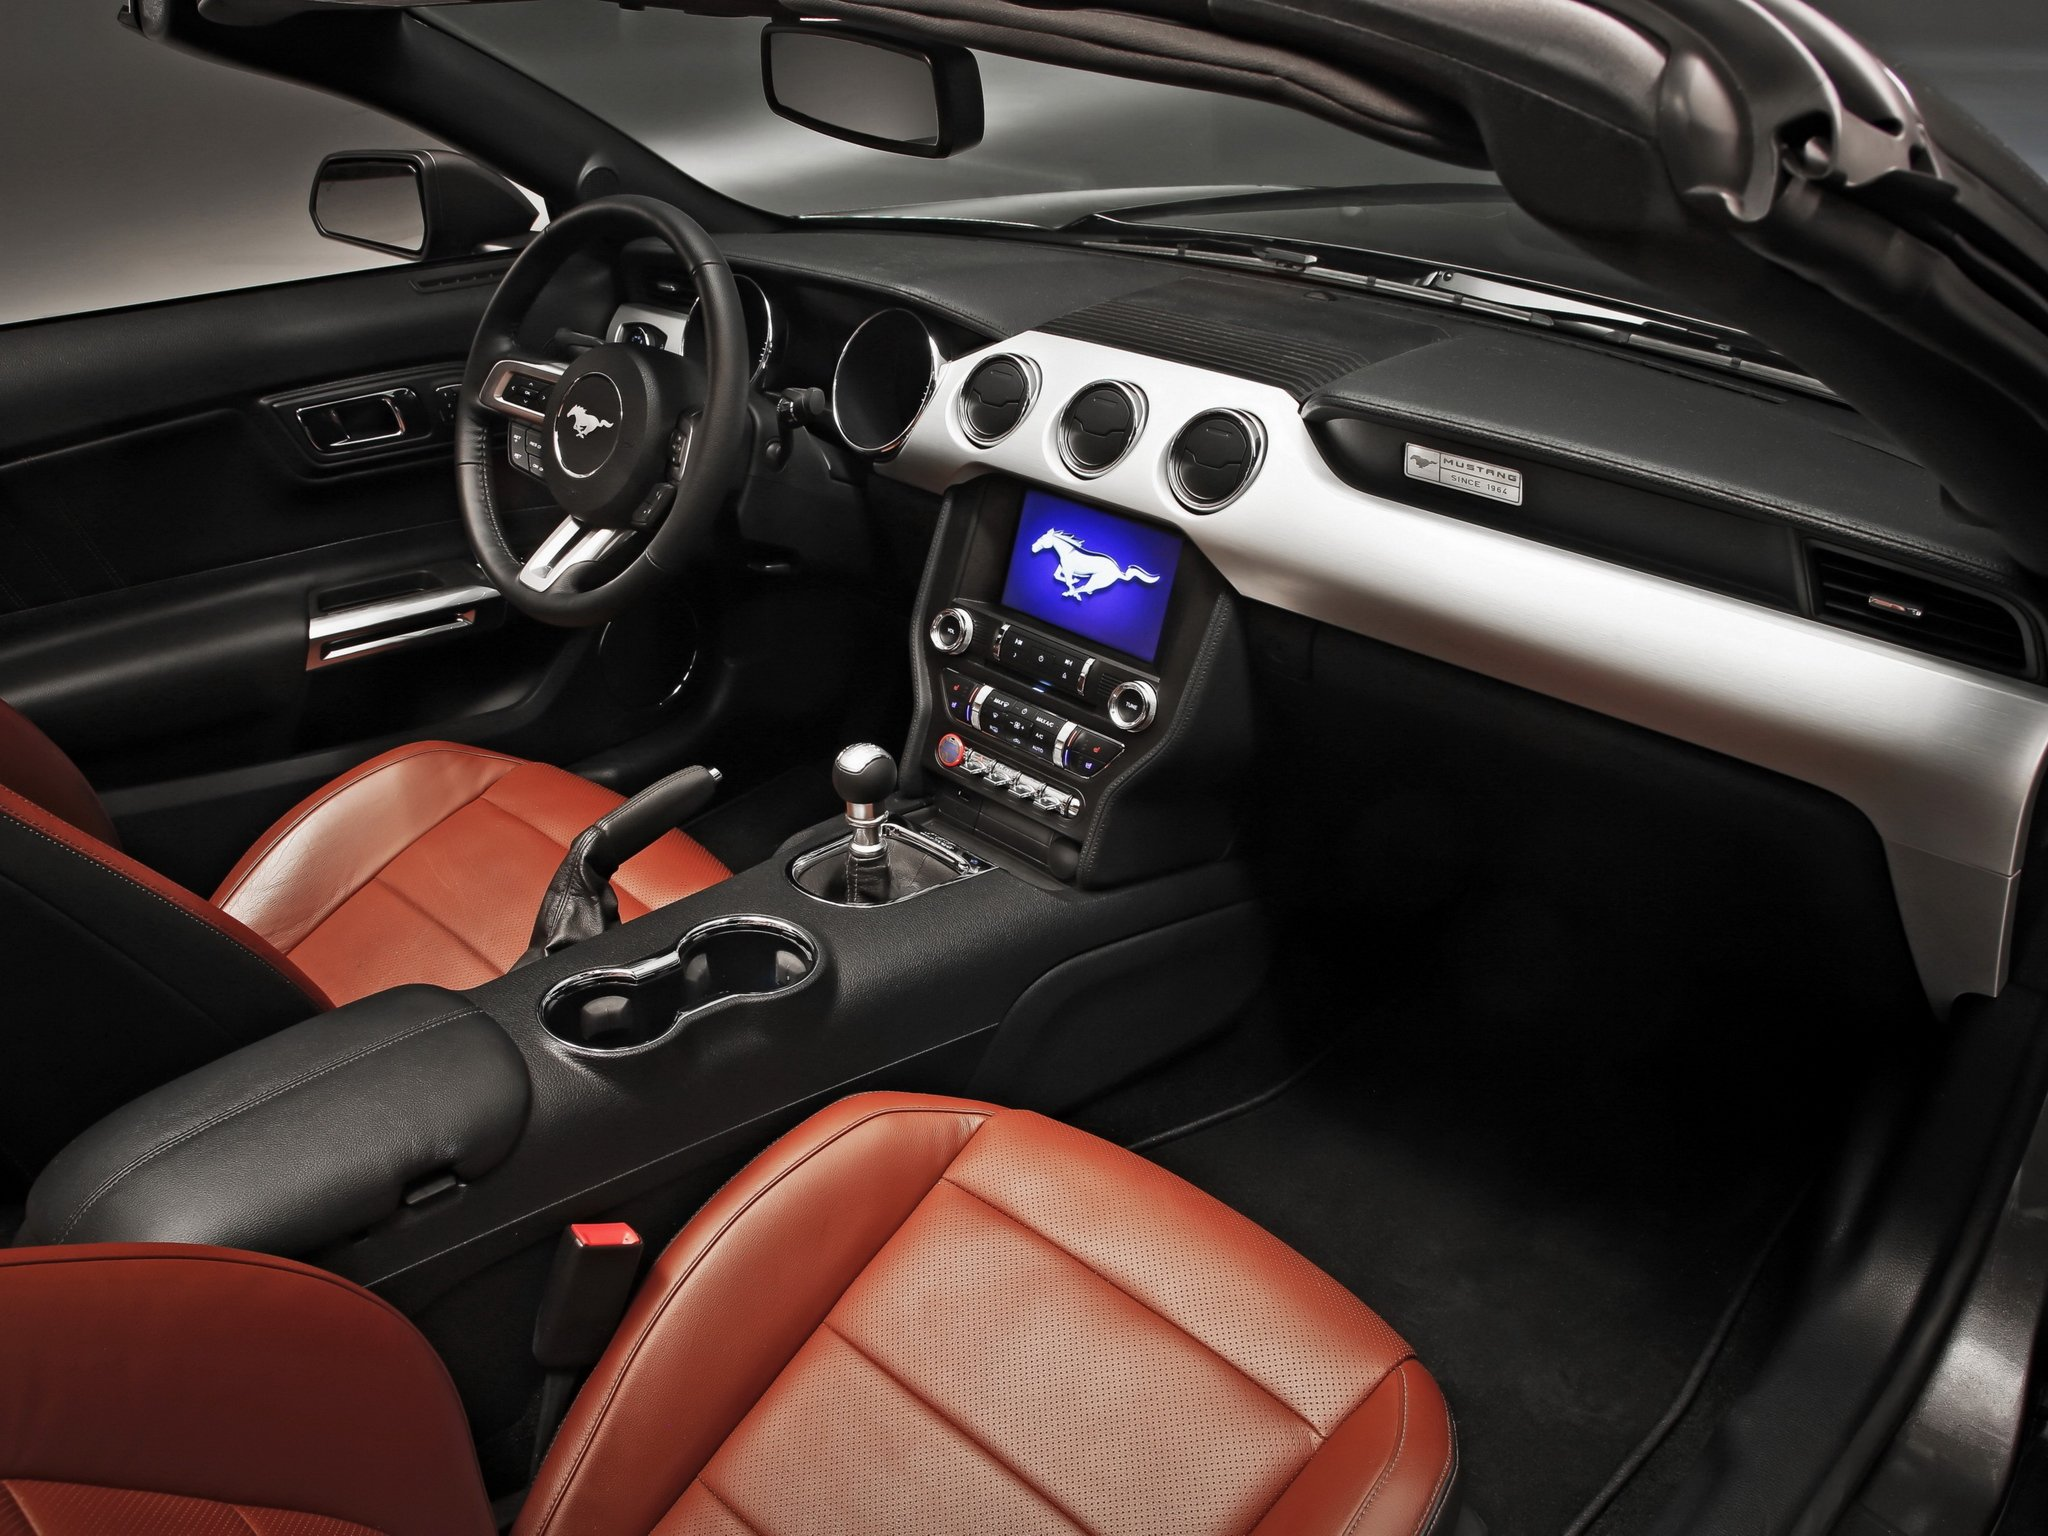 2014 Ford Mustang G T Convertible Muscle Interior G Wallpaper 2048x1536 287689 Wallpaperup